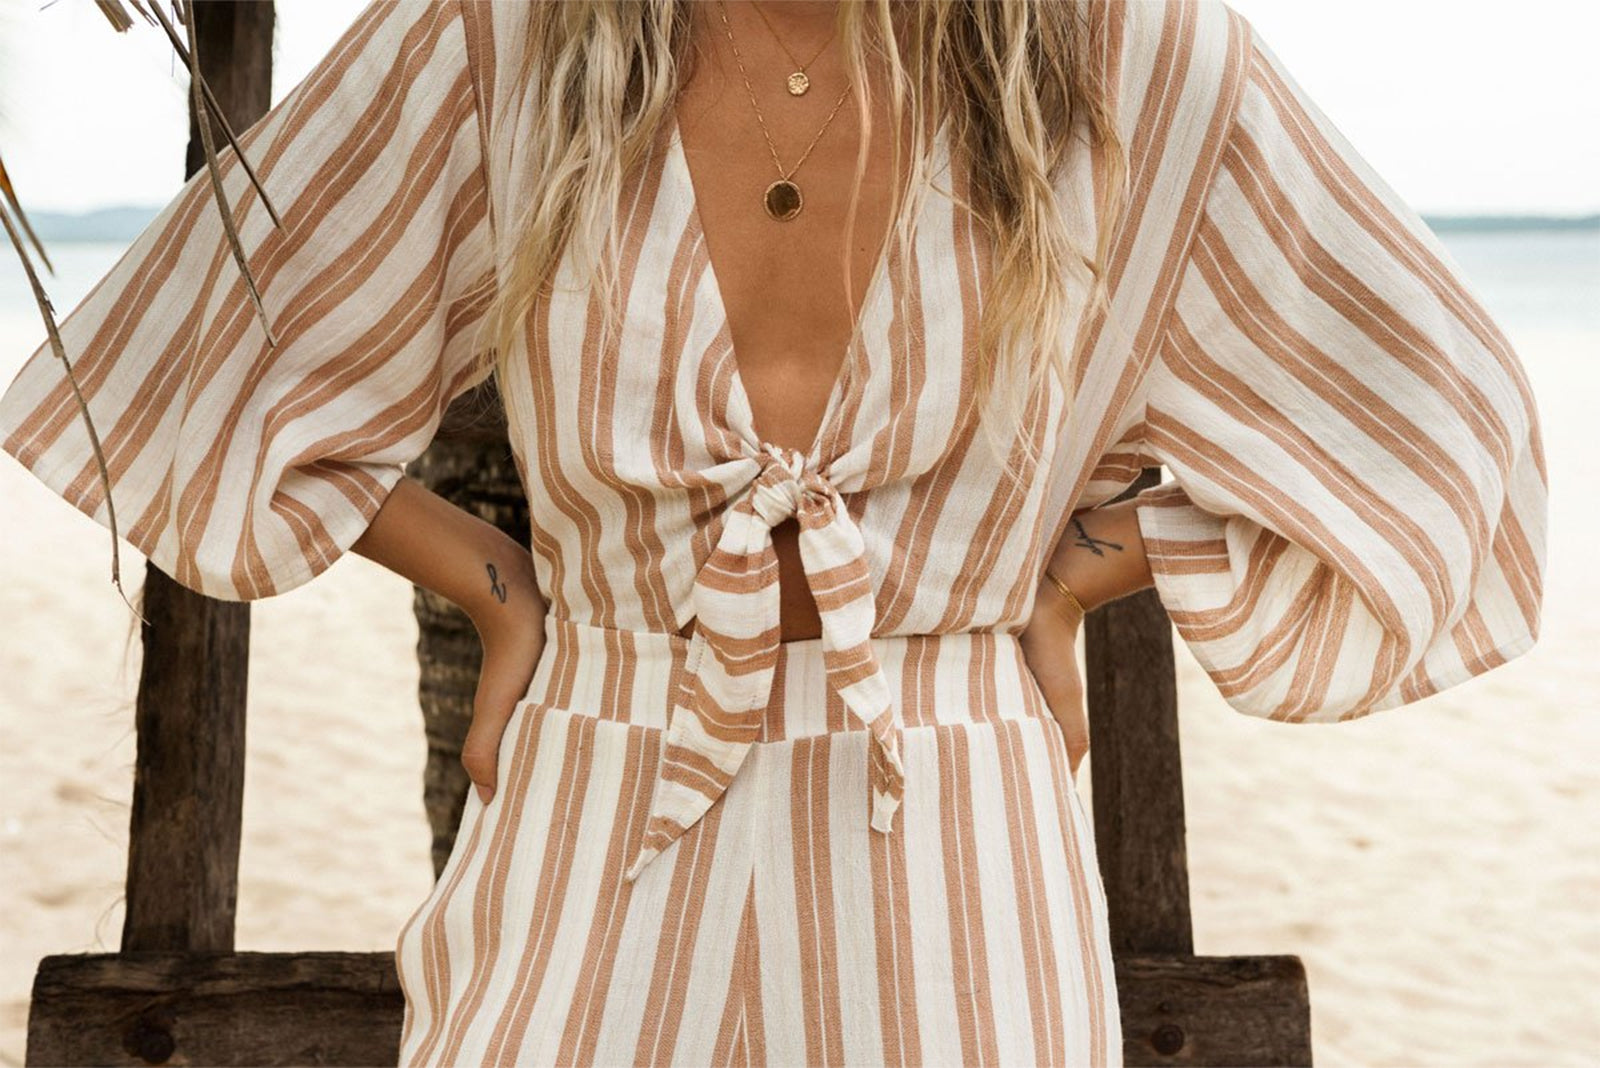 Billabong Summer Essentials Lookbook